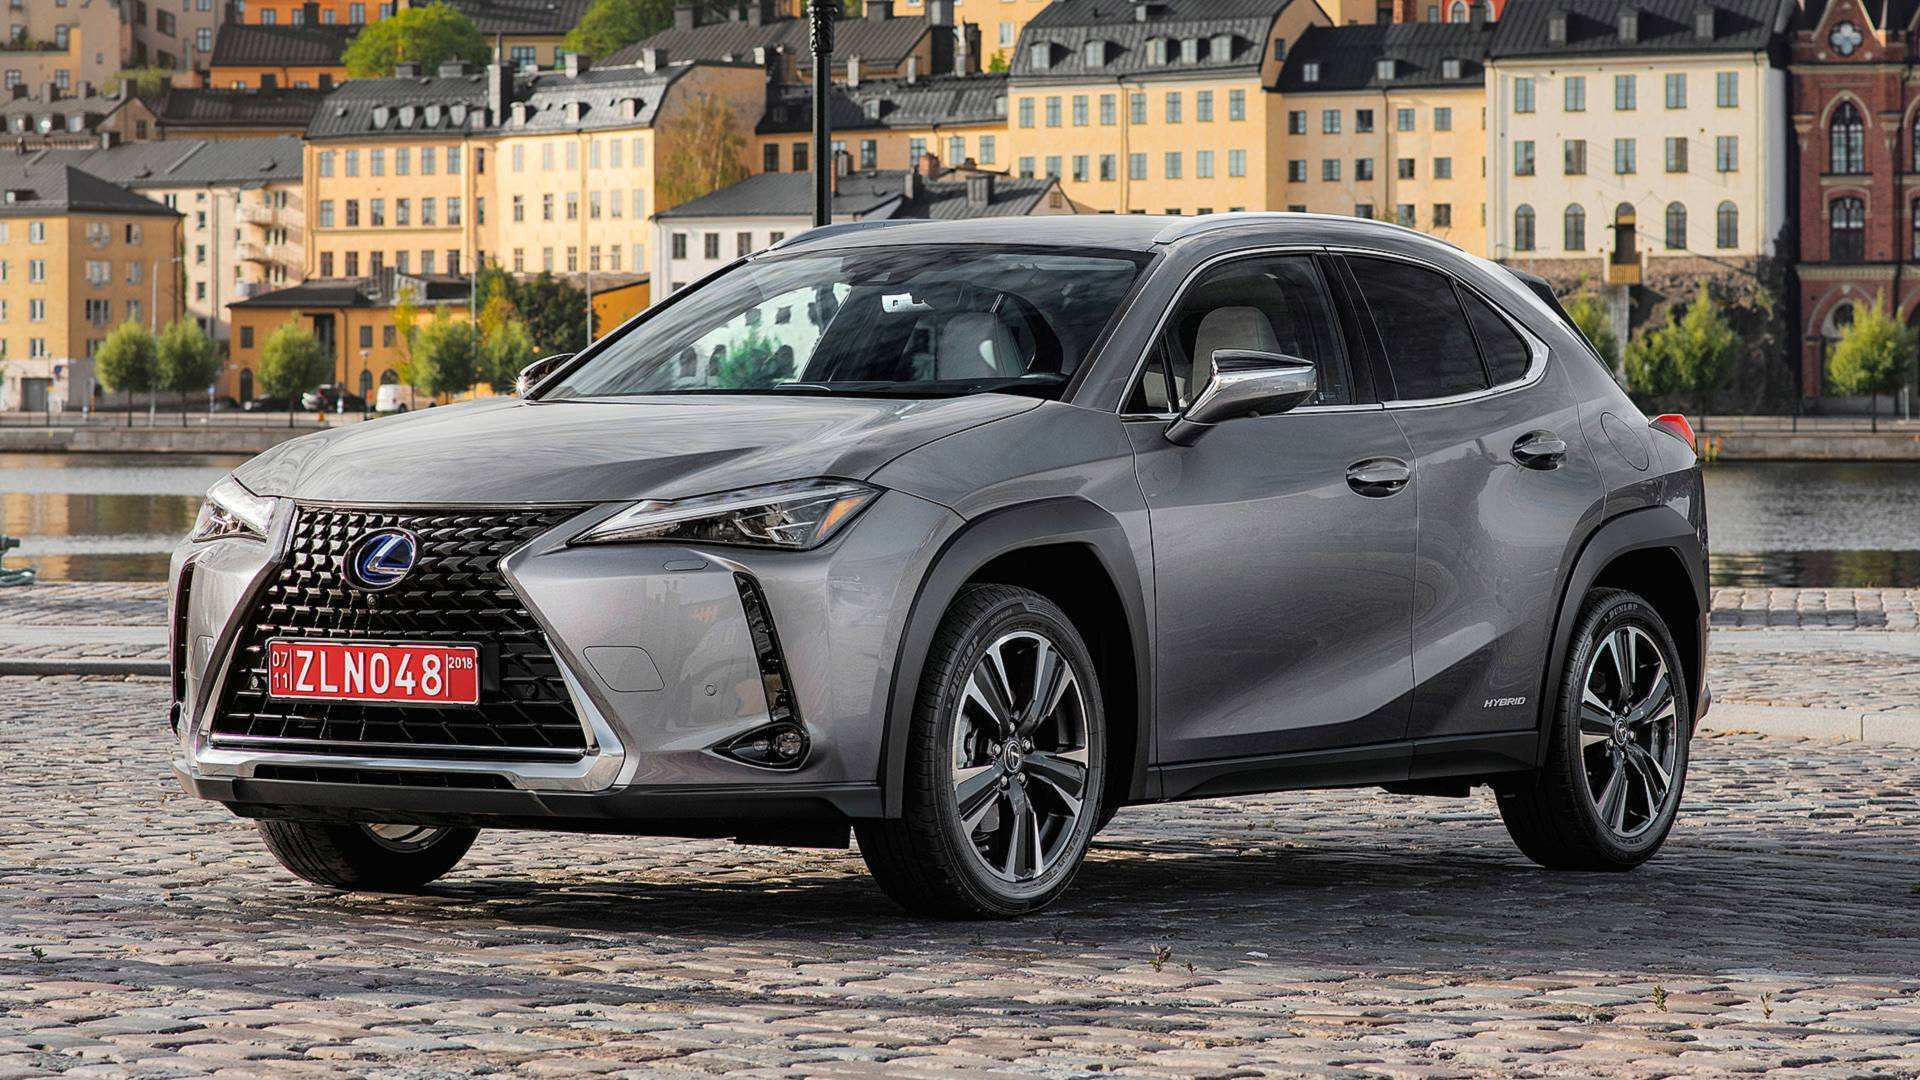 93 All New Lexus Ct 2019 Reviews for Lexus Ct 2019